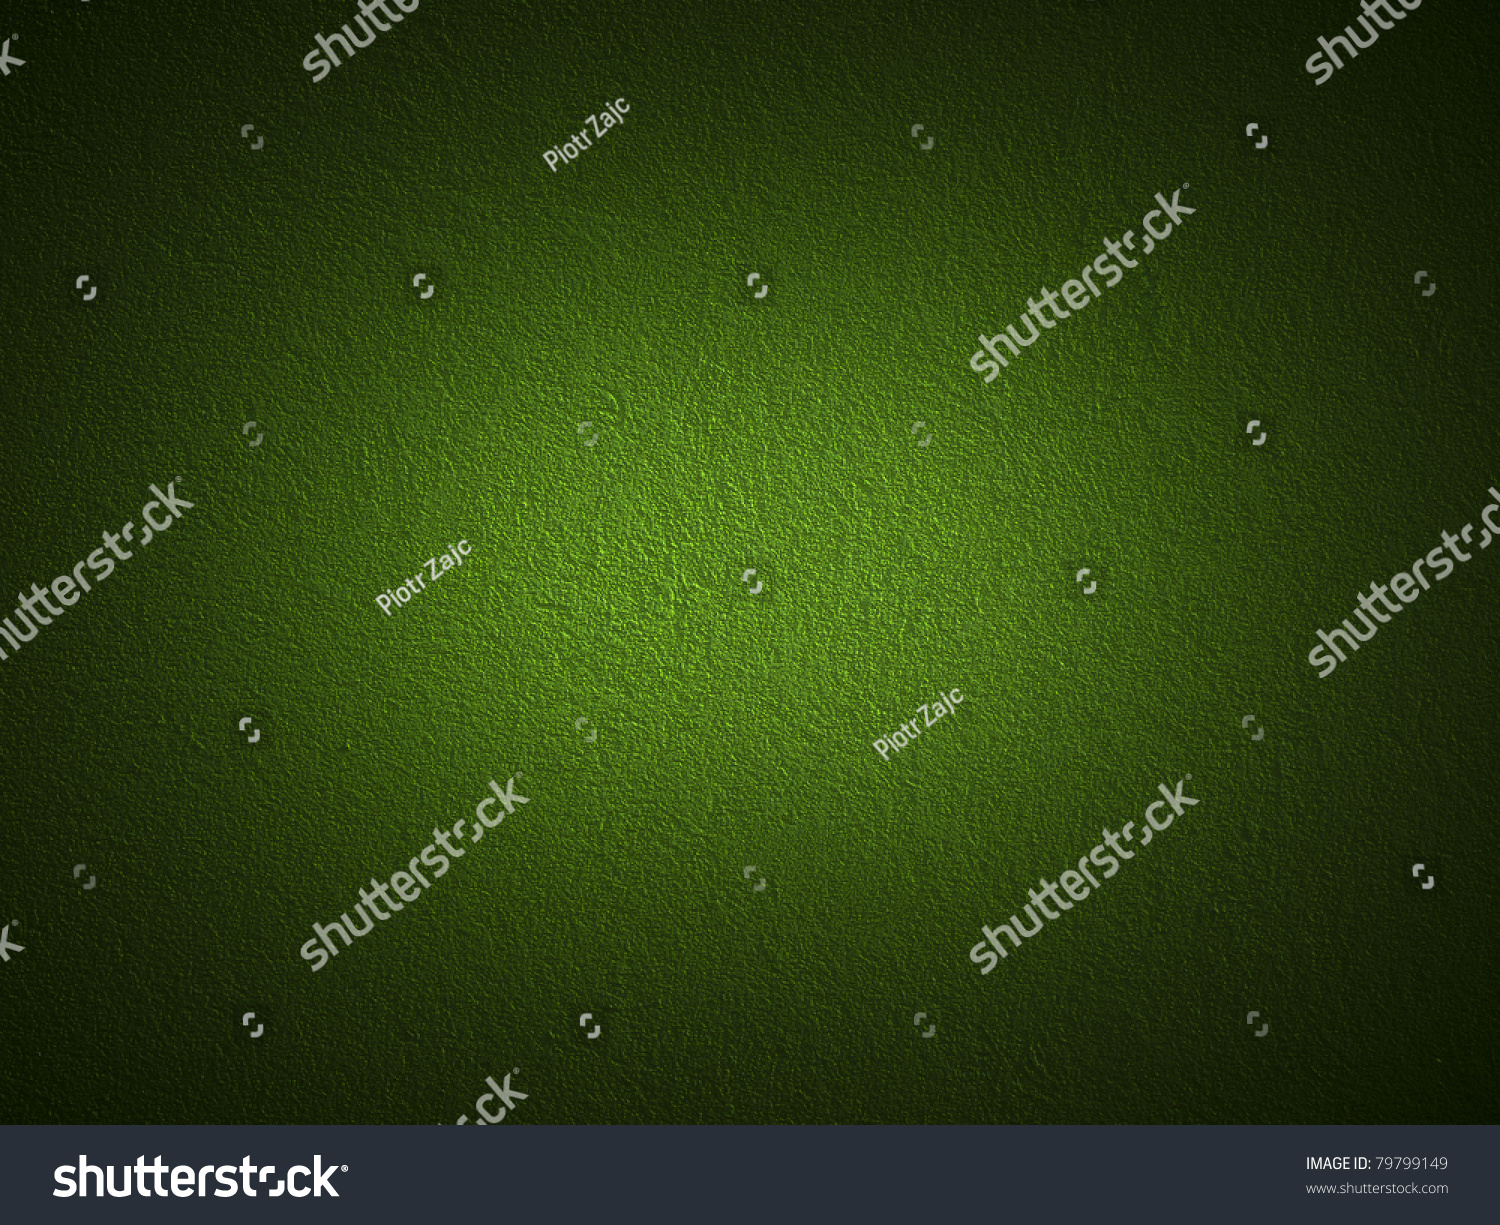 grain dark green paint wall background stock photo 79799149